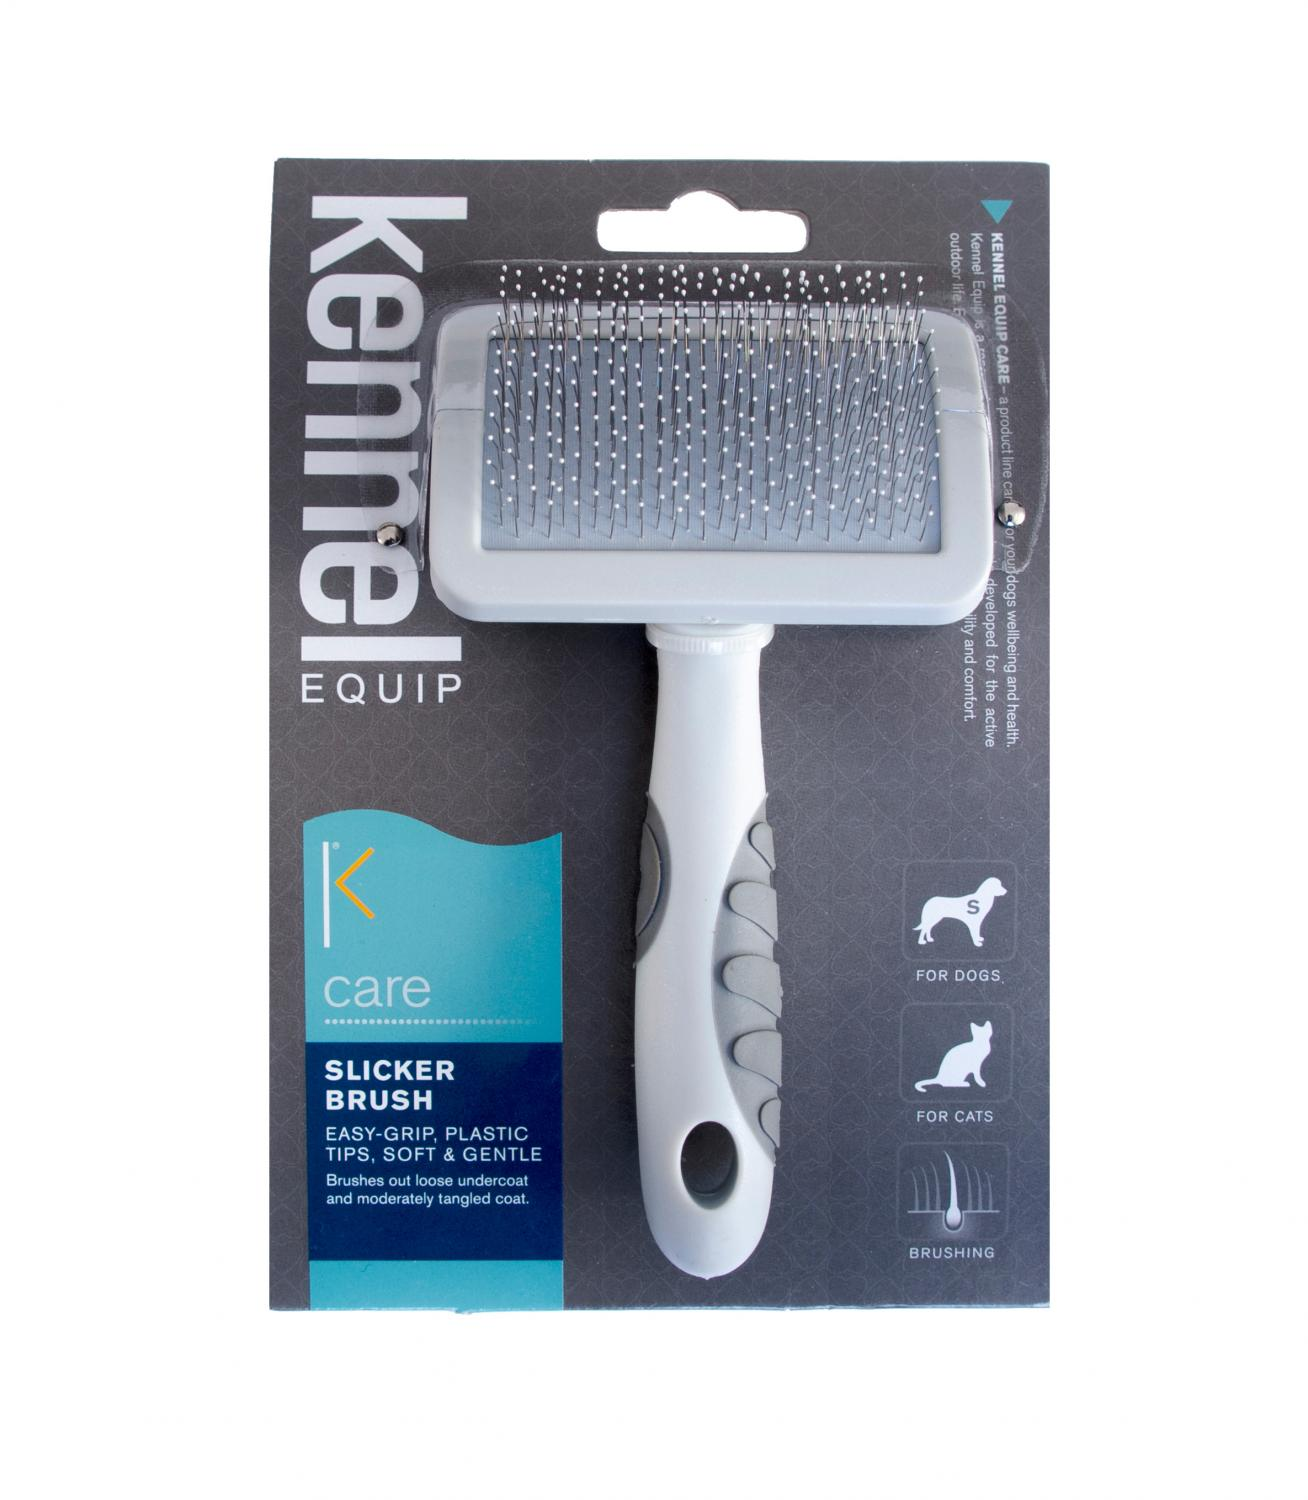 Kennel Equip Care slicker brush